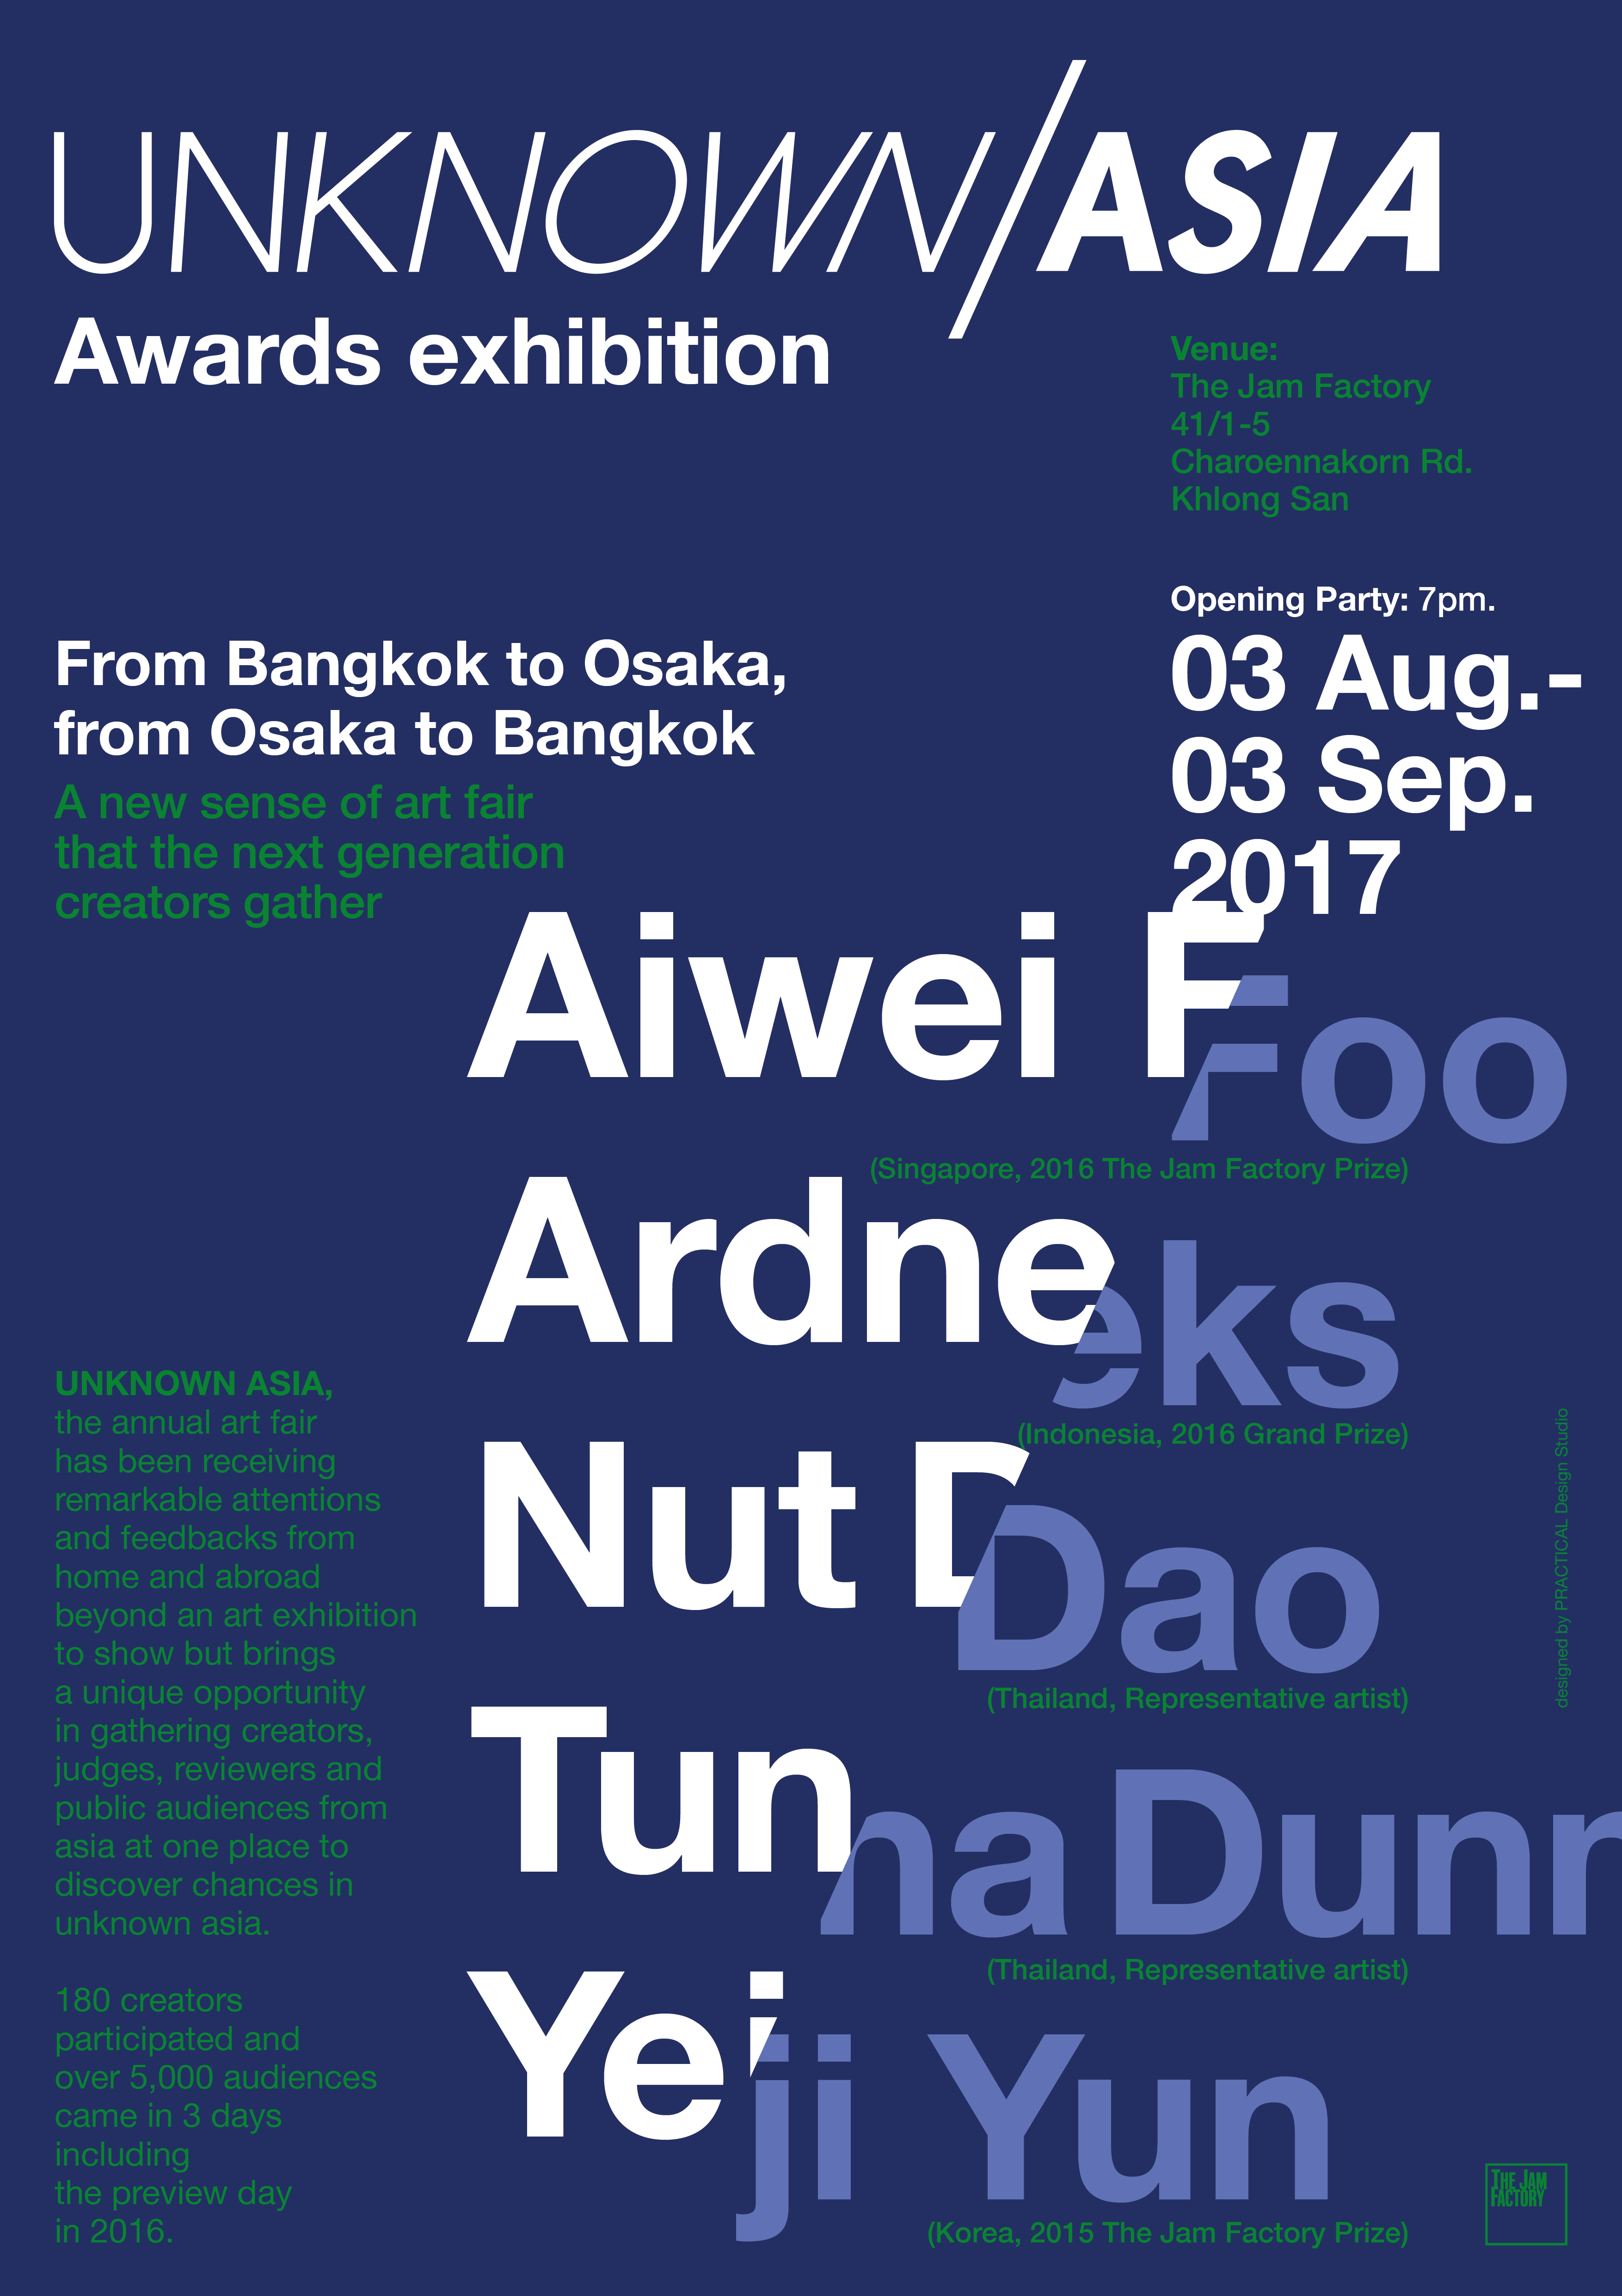 UNKNOWN ASIA Awards Exhibition in バンコク/